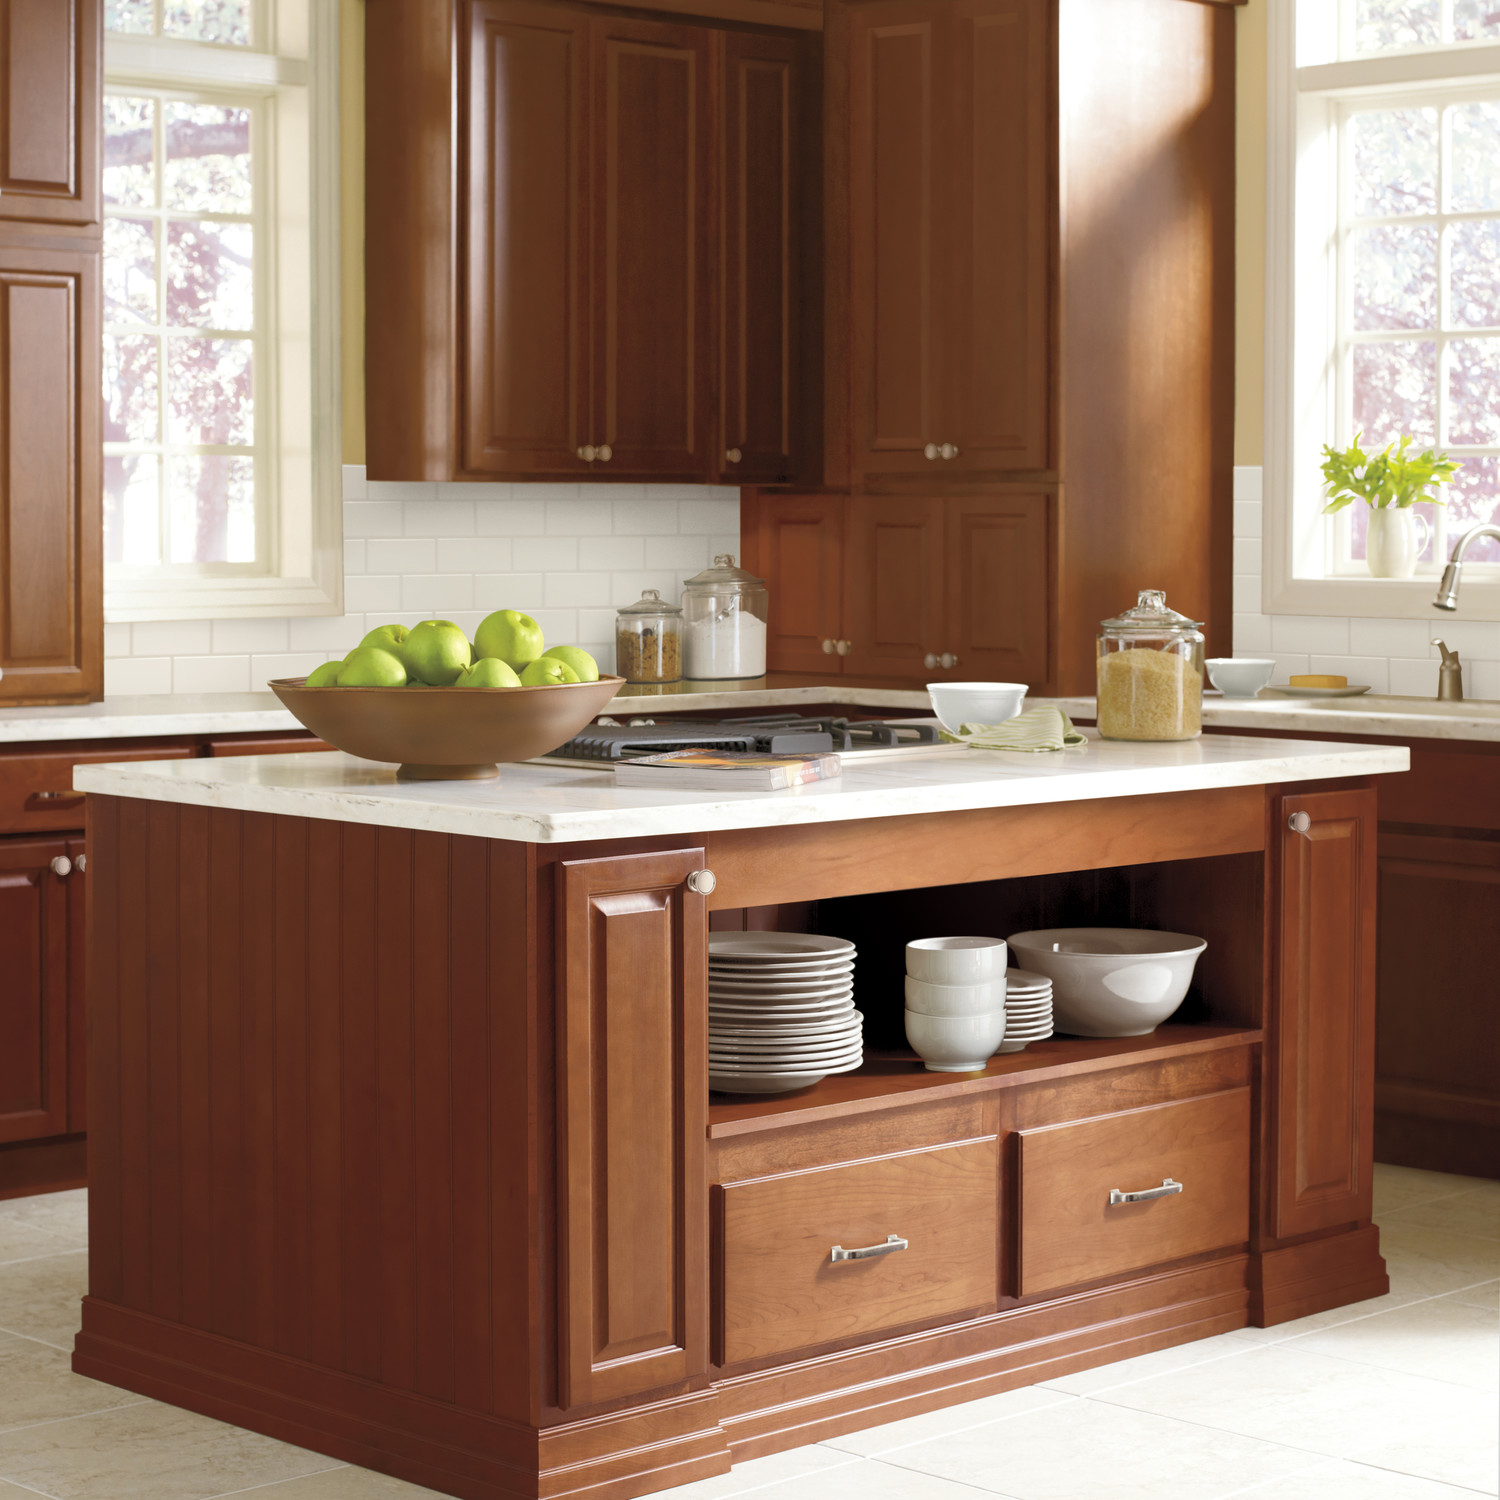 How To Clean The Kitchen Cabinets How To Seriously Deep Clean Your Kitchen Cabinets Martha